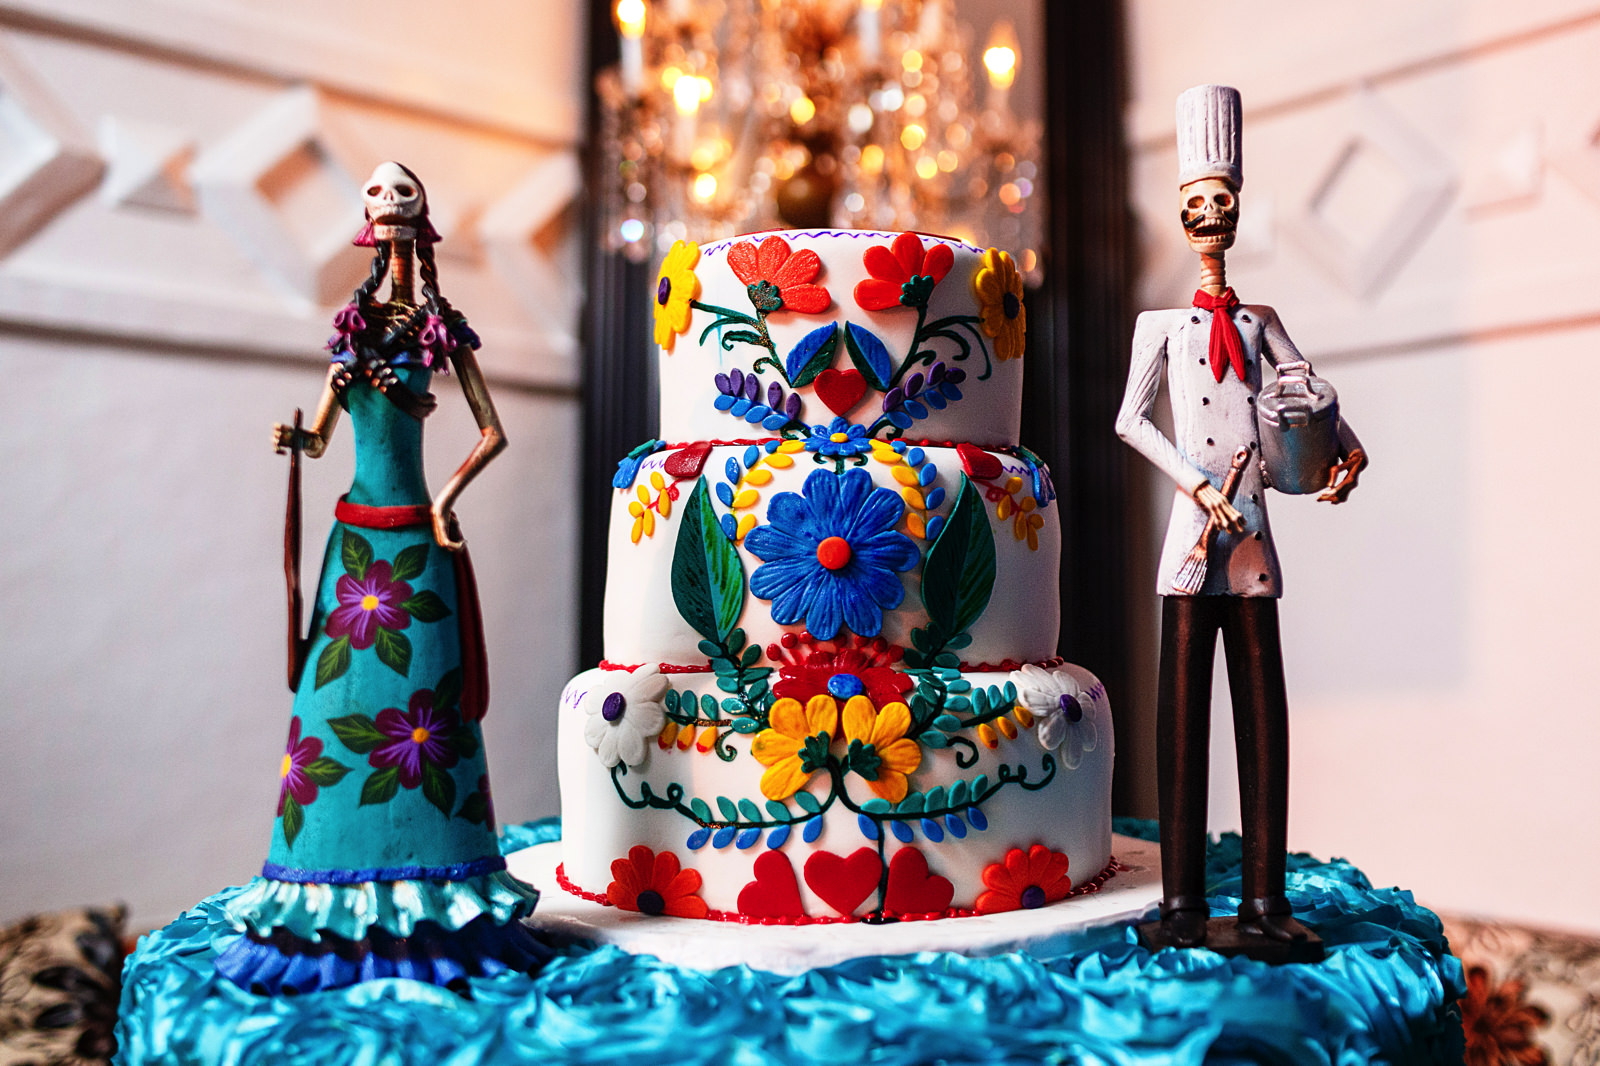 Mexican styled wedding cake with two skeleton statues beside it